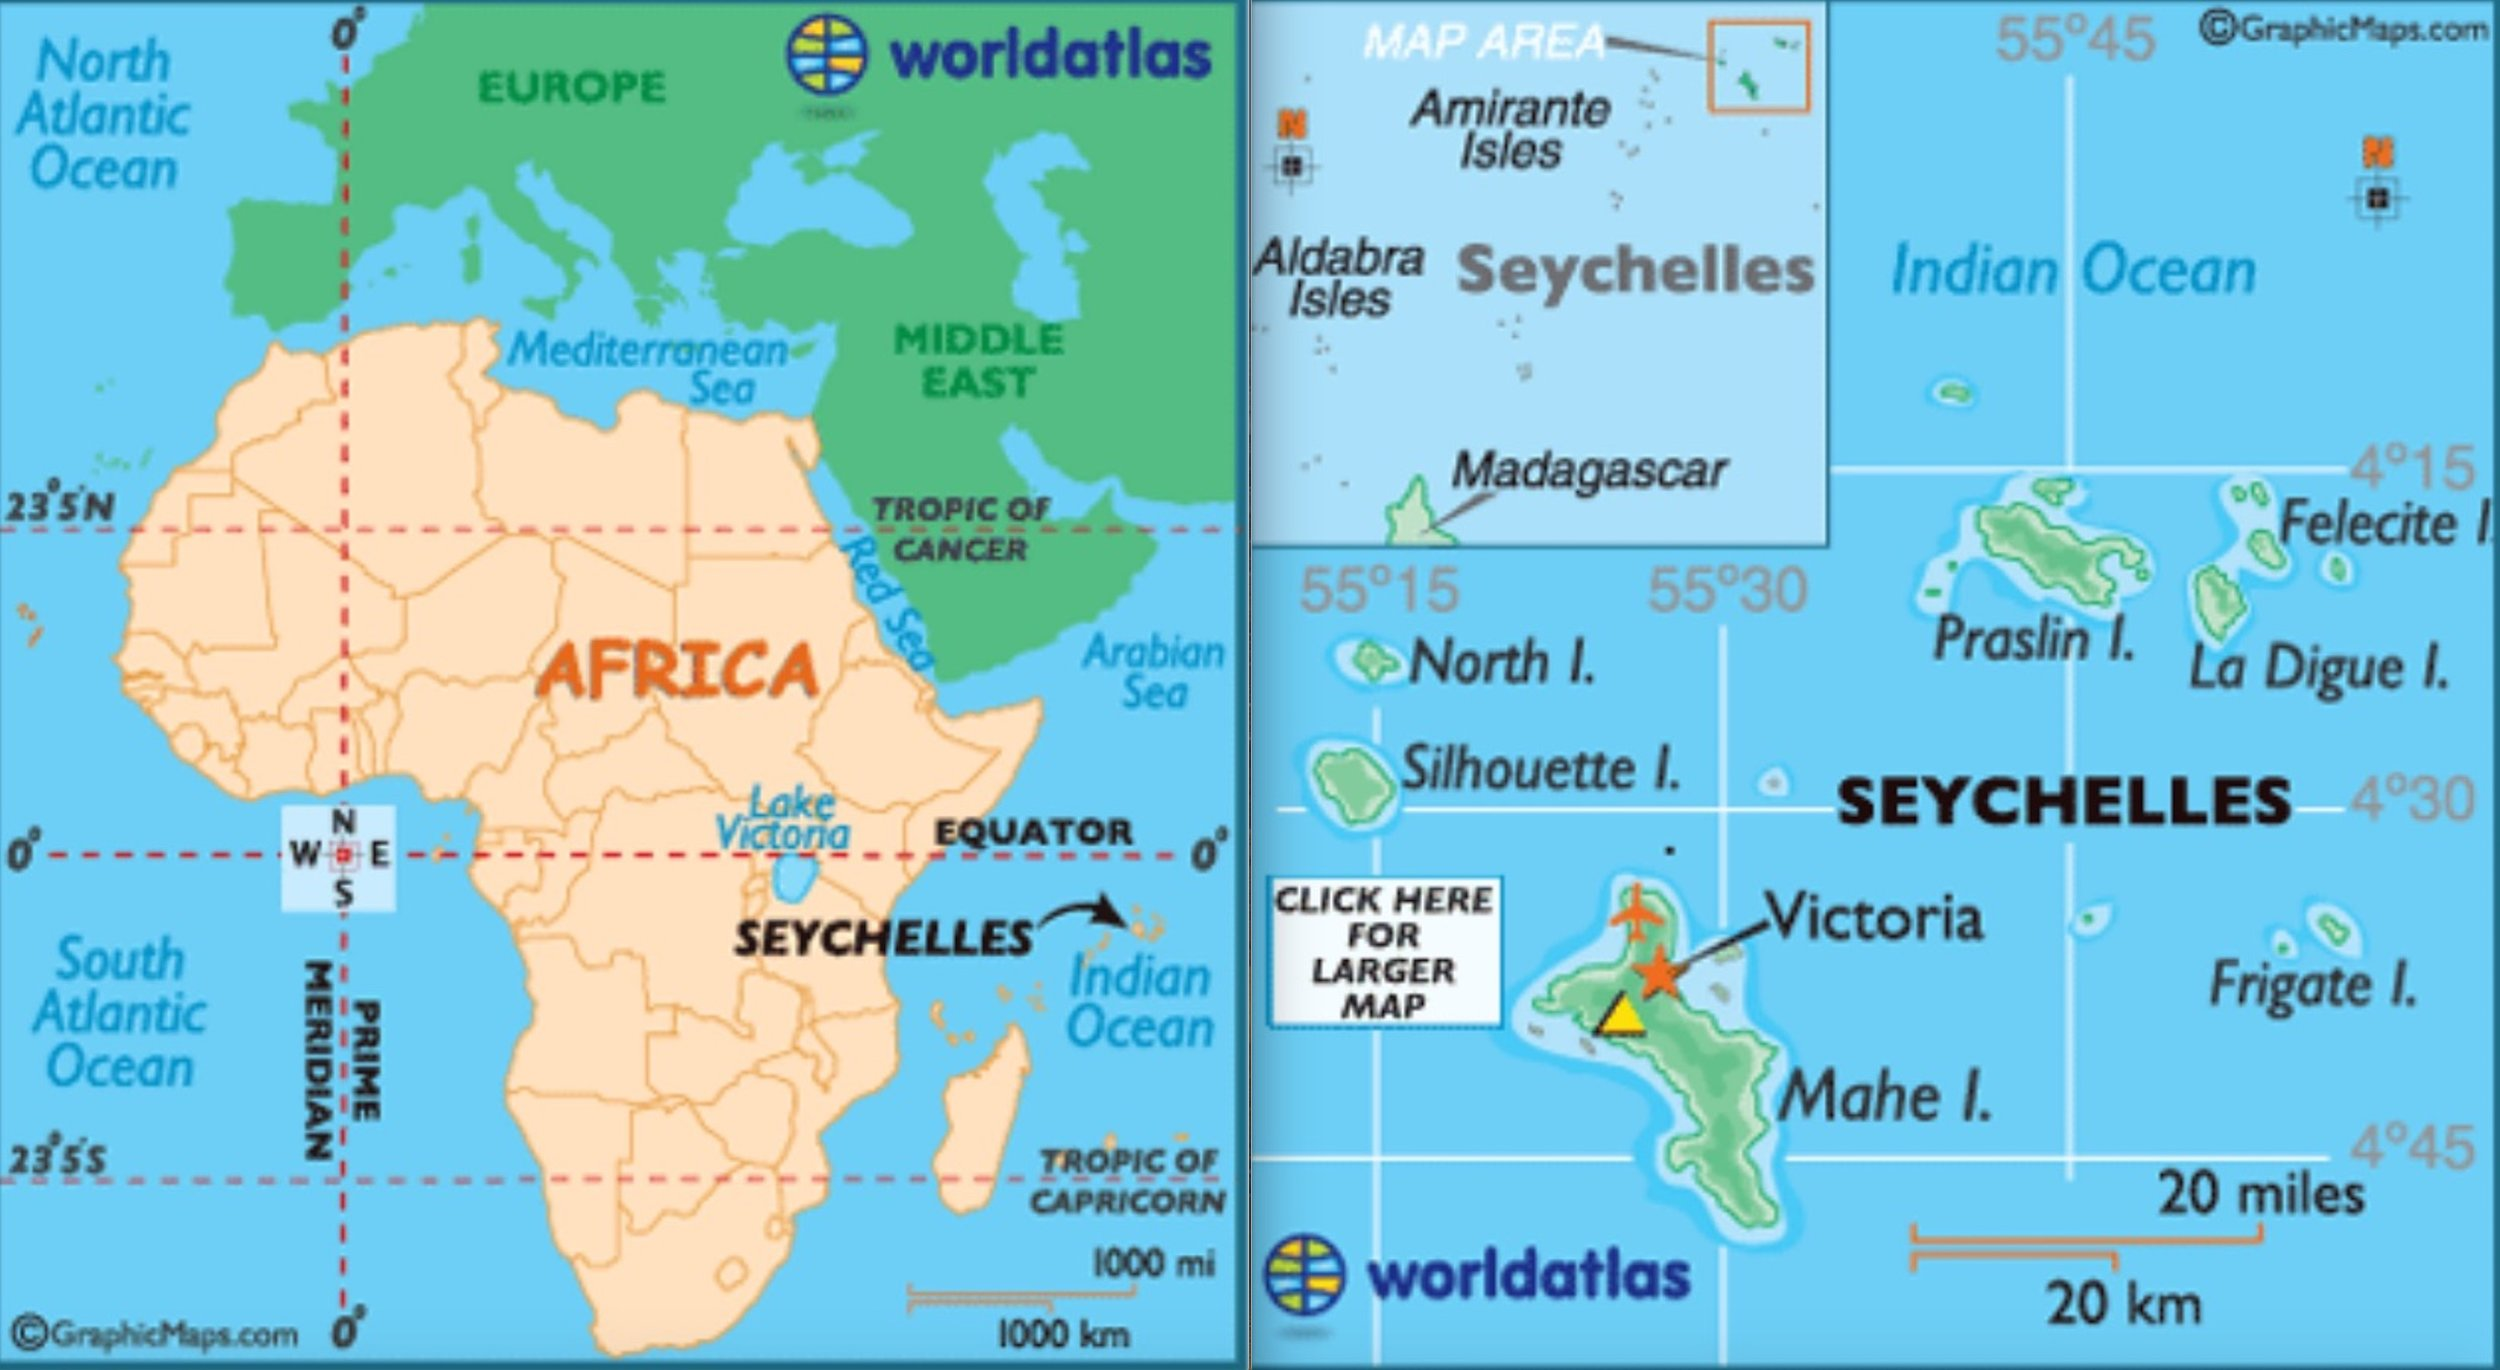 The Seychelles is an island nation of 215,000 people and 115 islands in the western Indian Ocean. (c) WorldAtlas